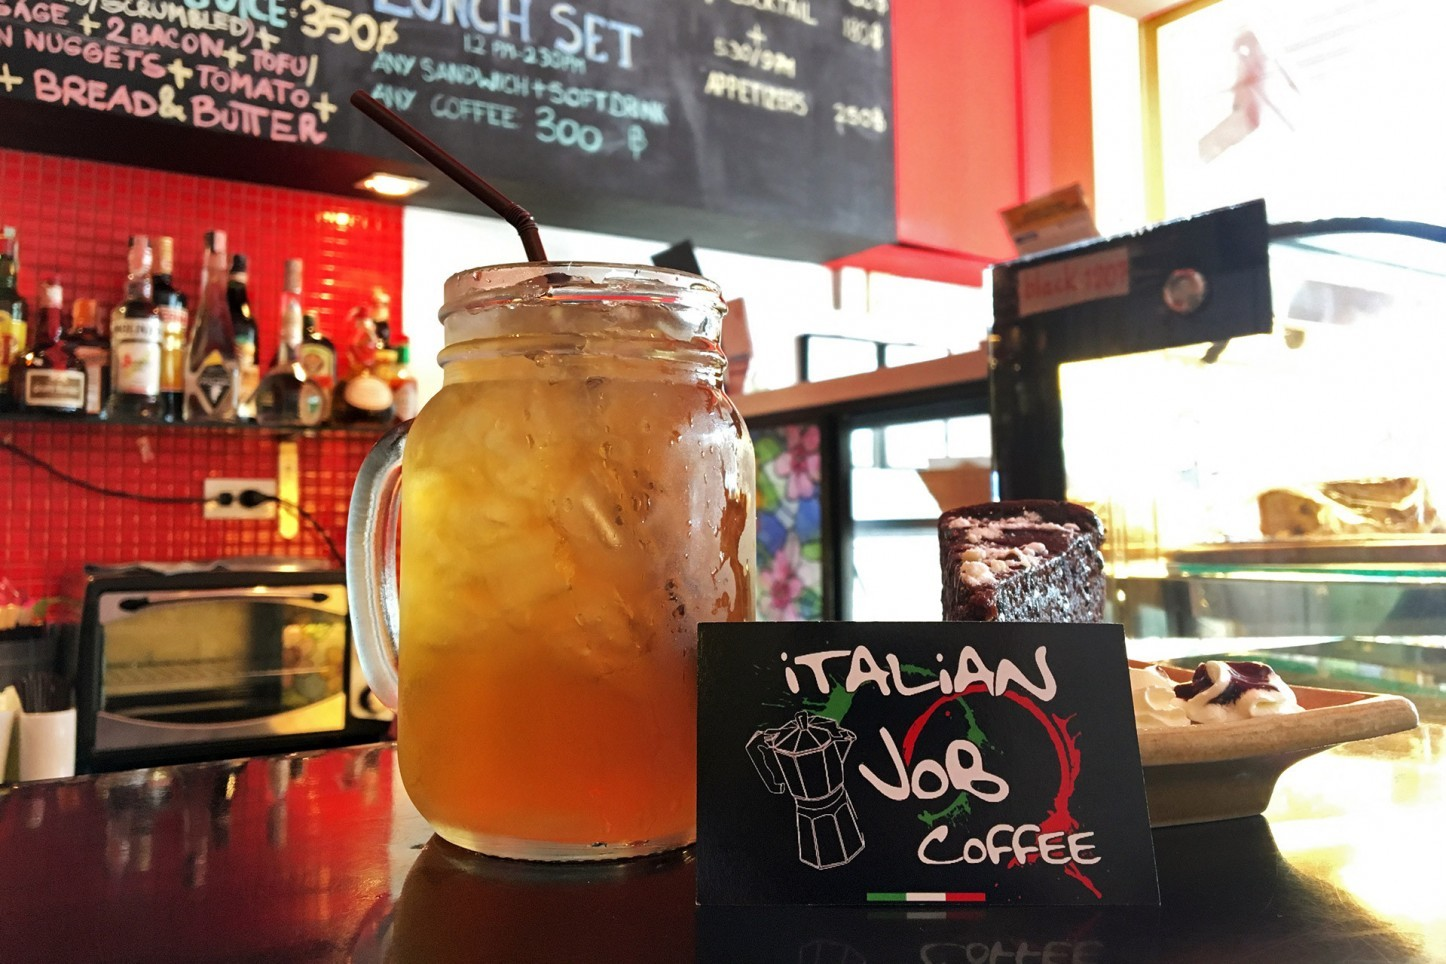 The Italian job coffee shop, Kata, Phuket